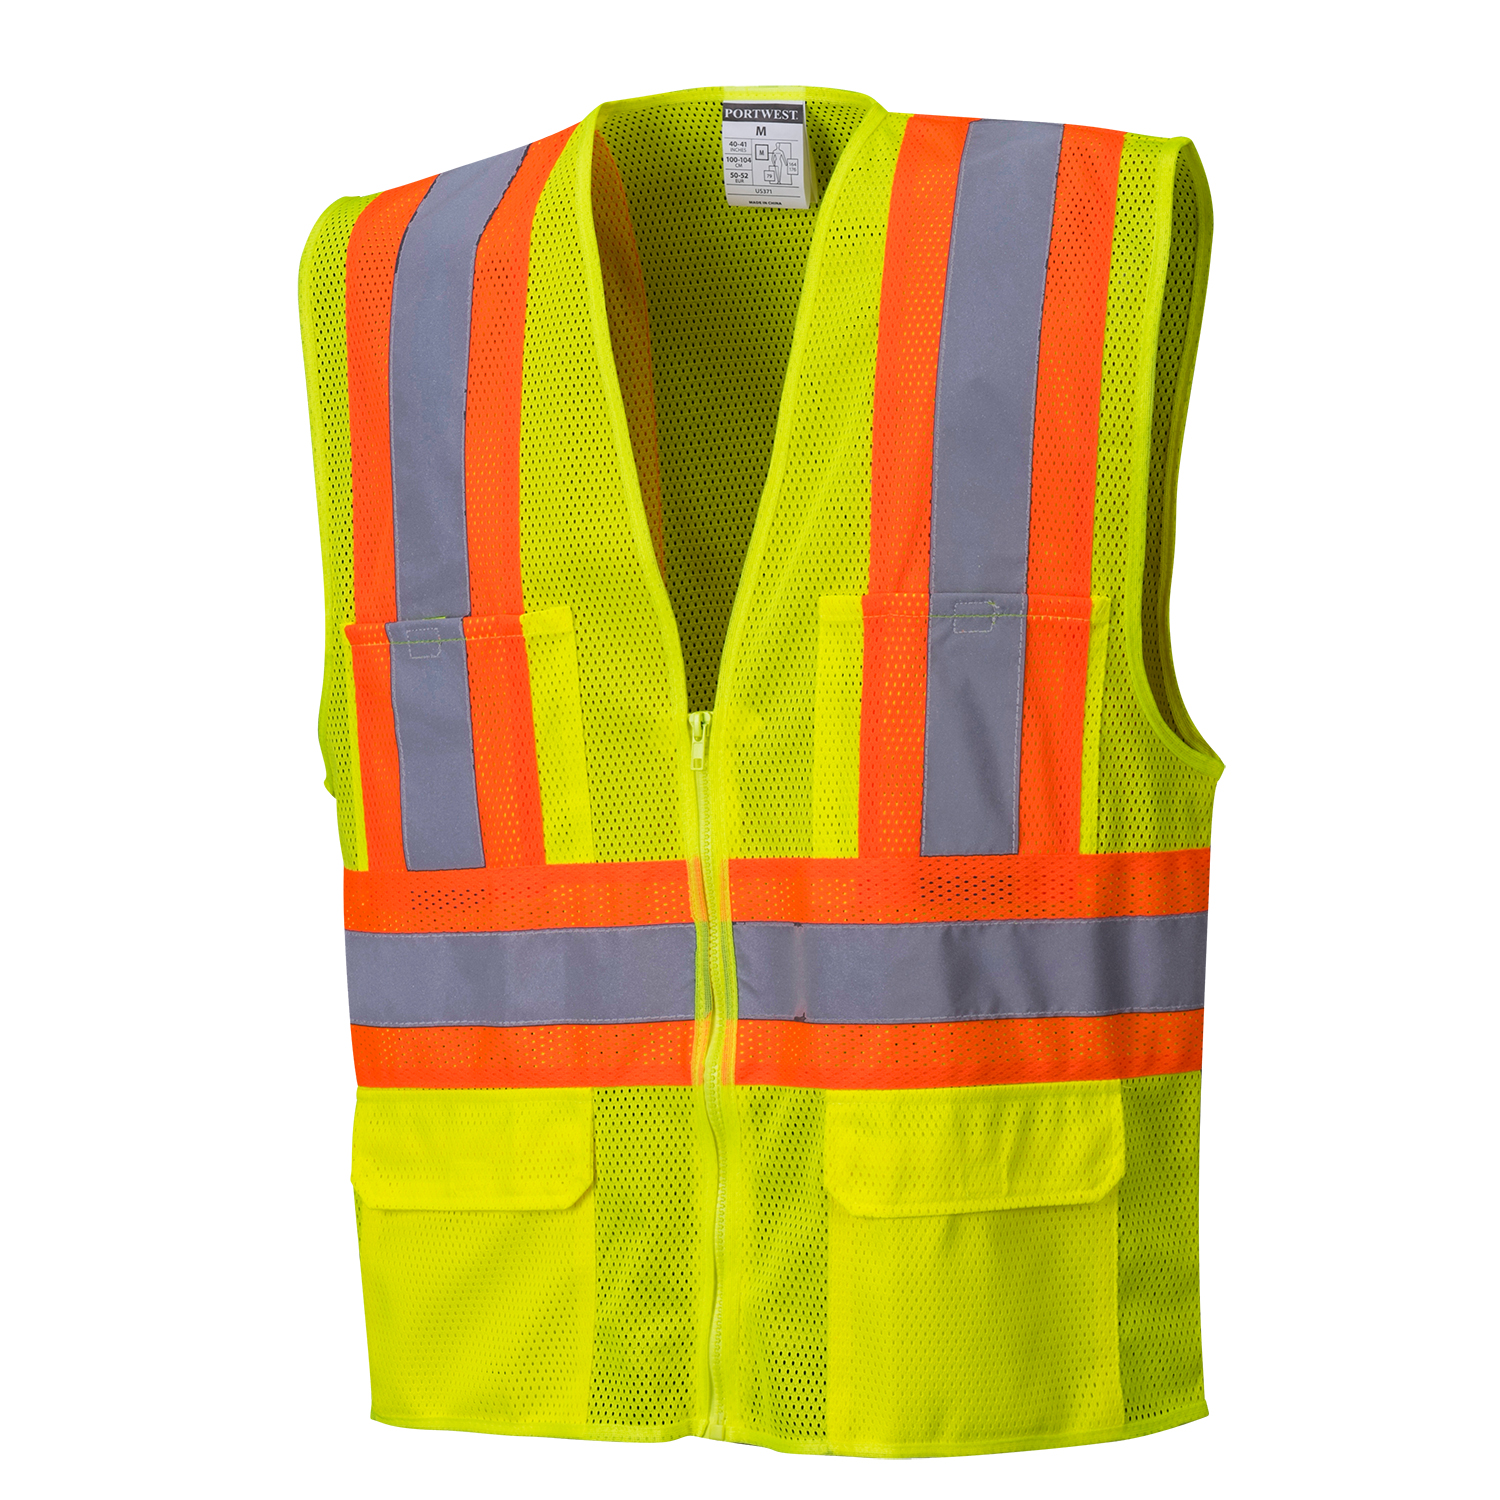 Safety Orange Hi-Vis Mesh Safety Vest